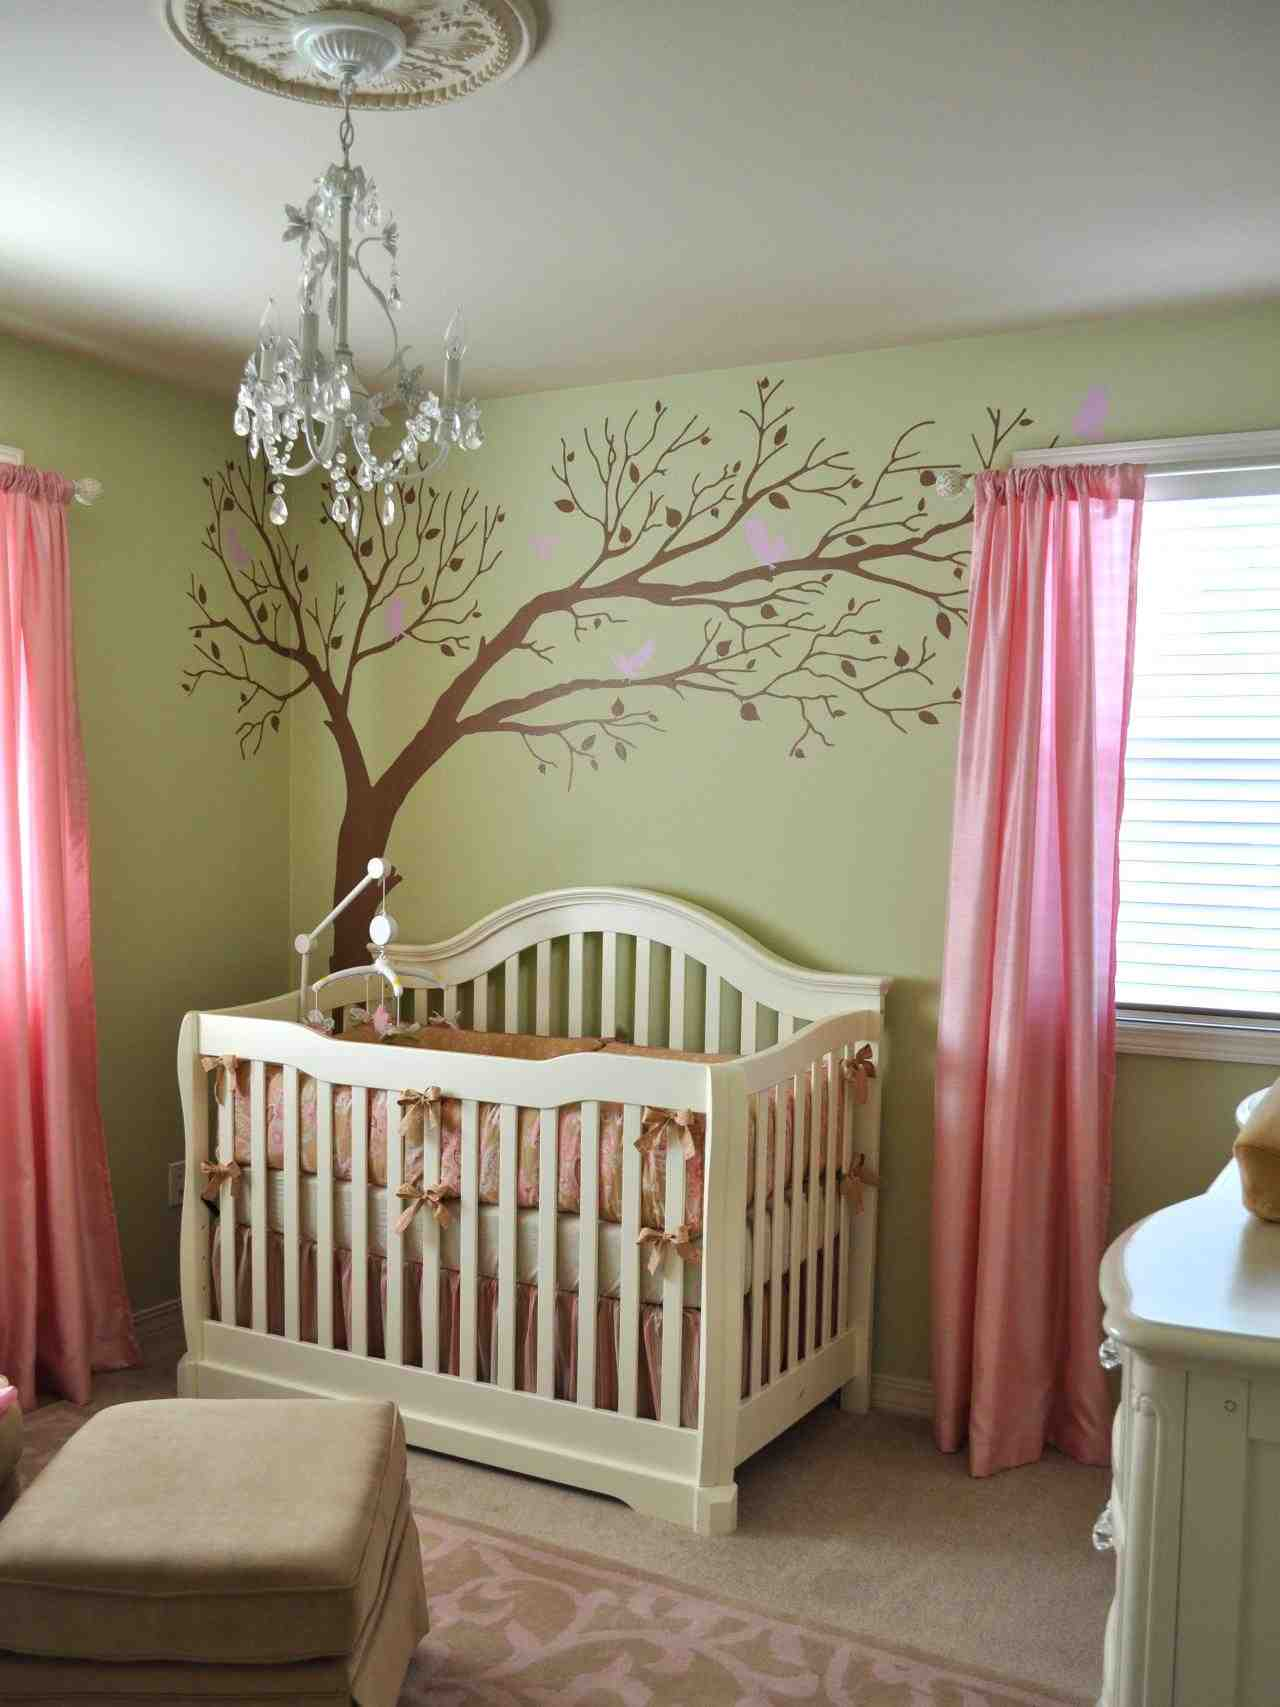 Couleur mur chambre b b how to pick the right colors for a modern nursery design - Couleur mur chambre bebe ...